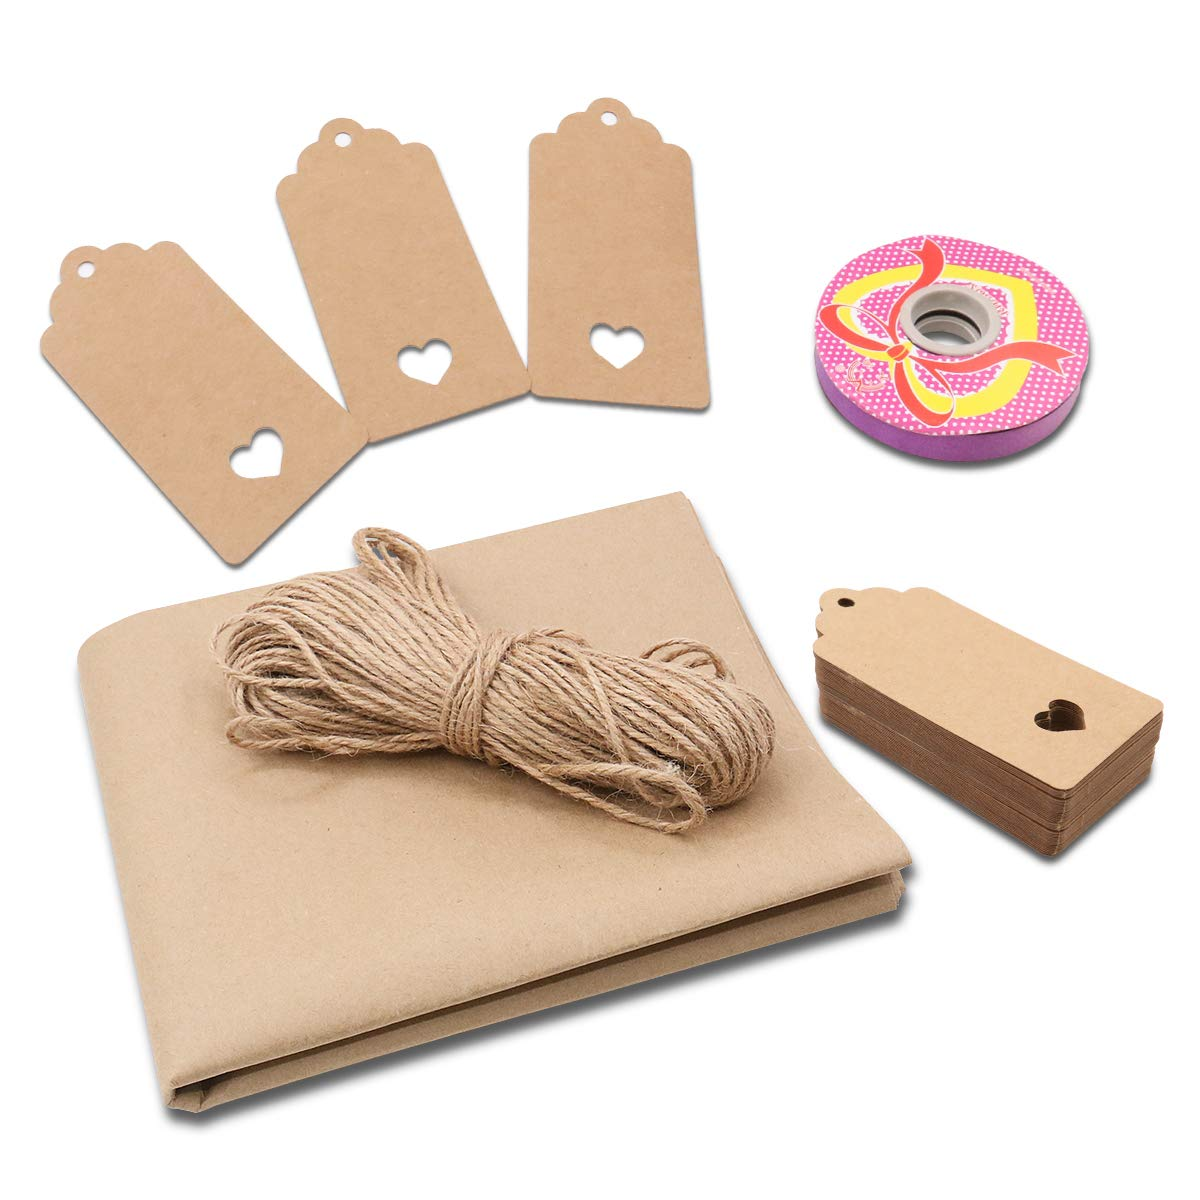 50 pcs Brown Kraft Paper tag with 100 feet Natural Jute Twine,Color Gift String for Wedding,Festival,Birthday Party Favors